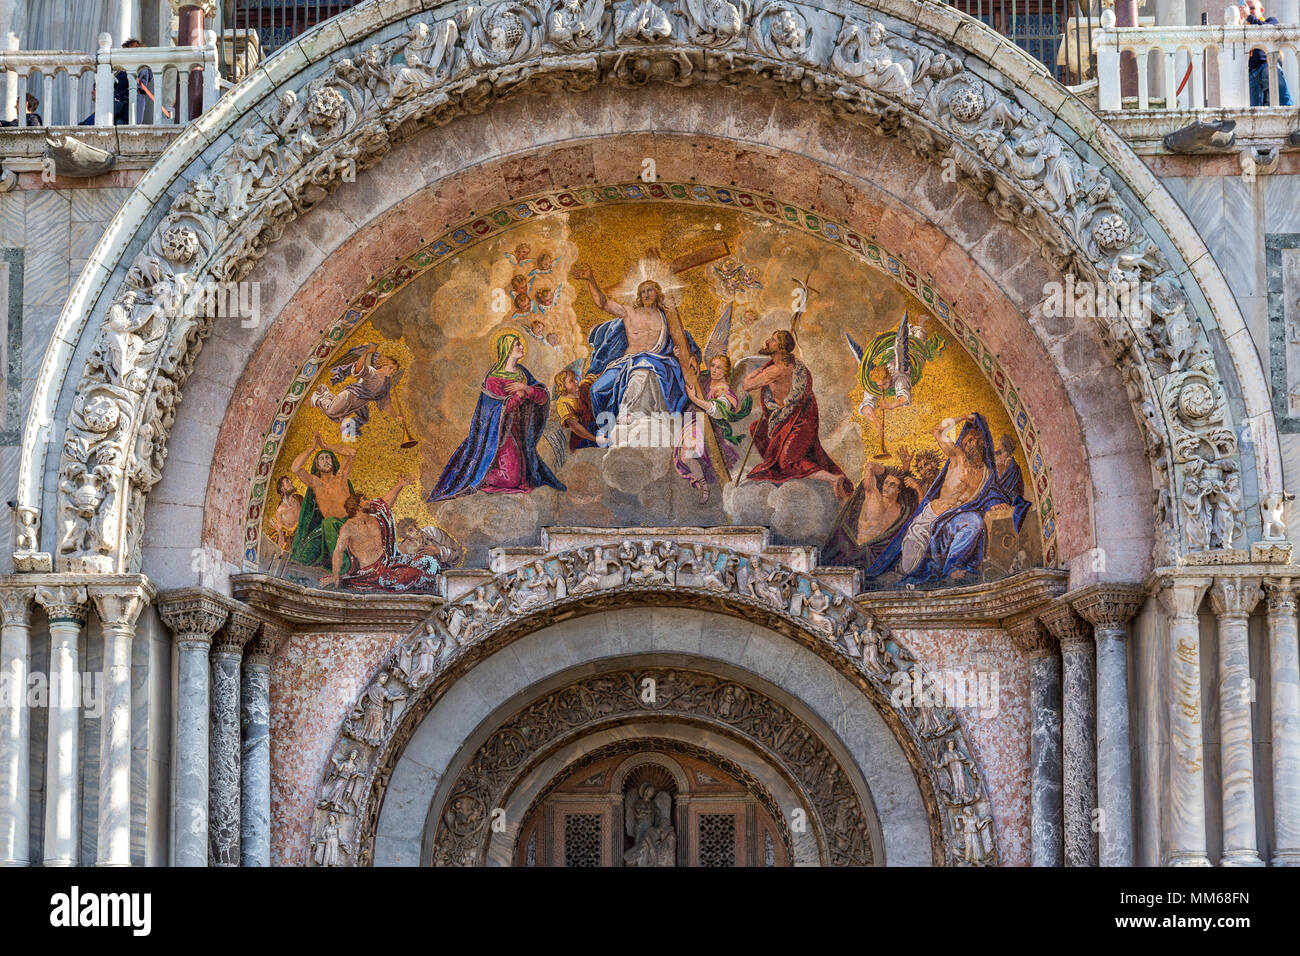 The Risen Christ mosaic over the entry to Basilica di San Marco, Piazza San Marco, Venice, Veneto, Italy - Stock Image